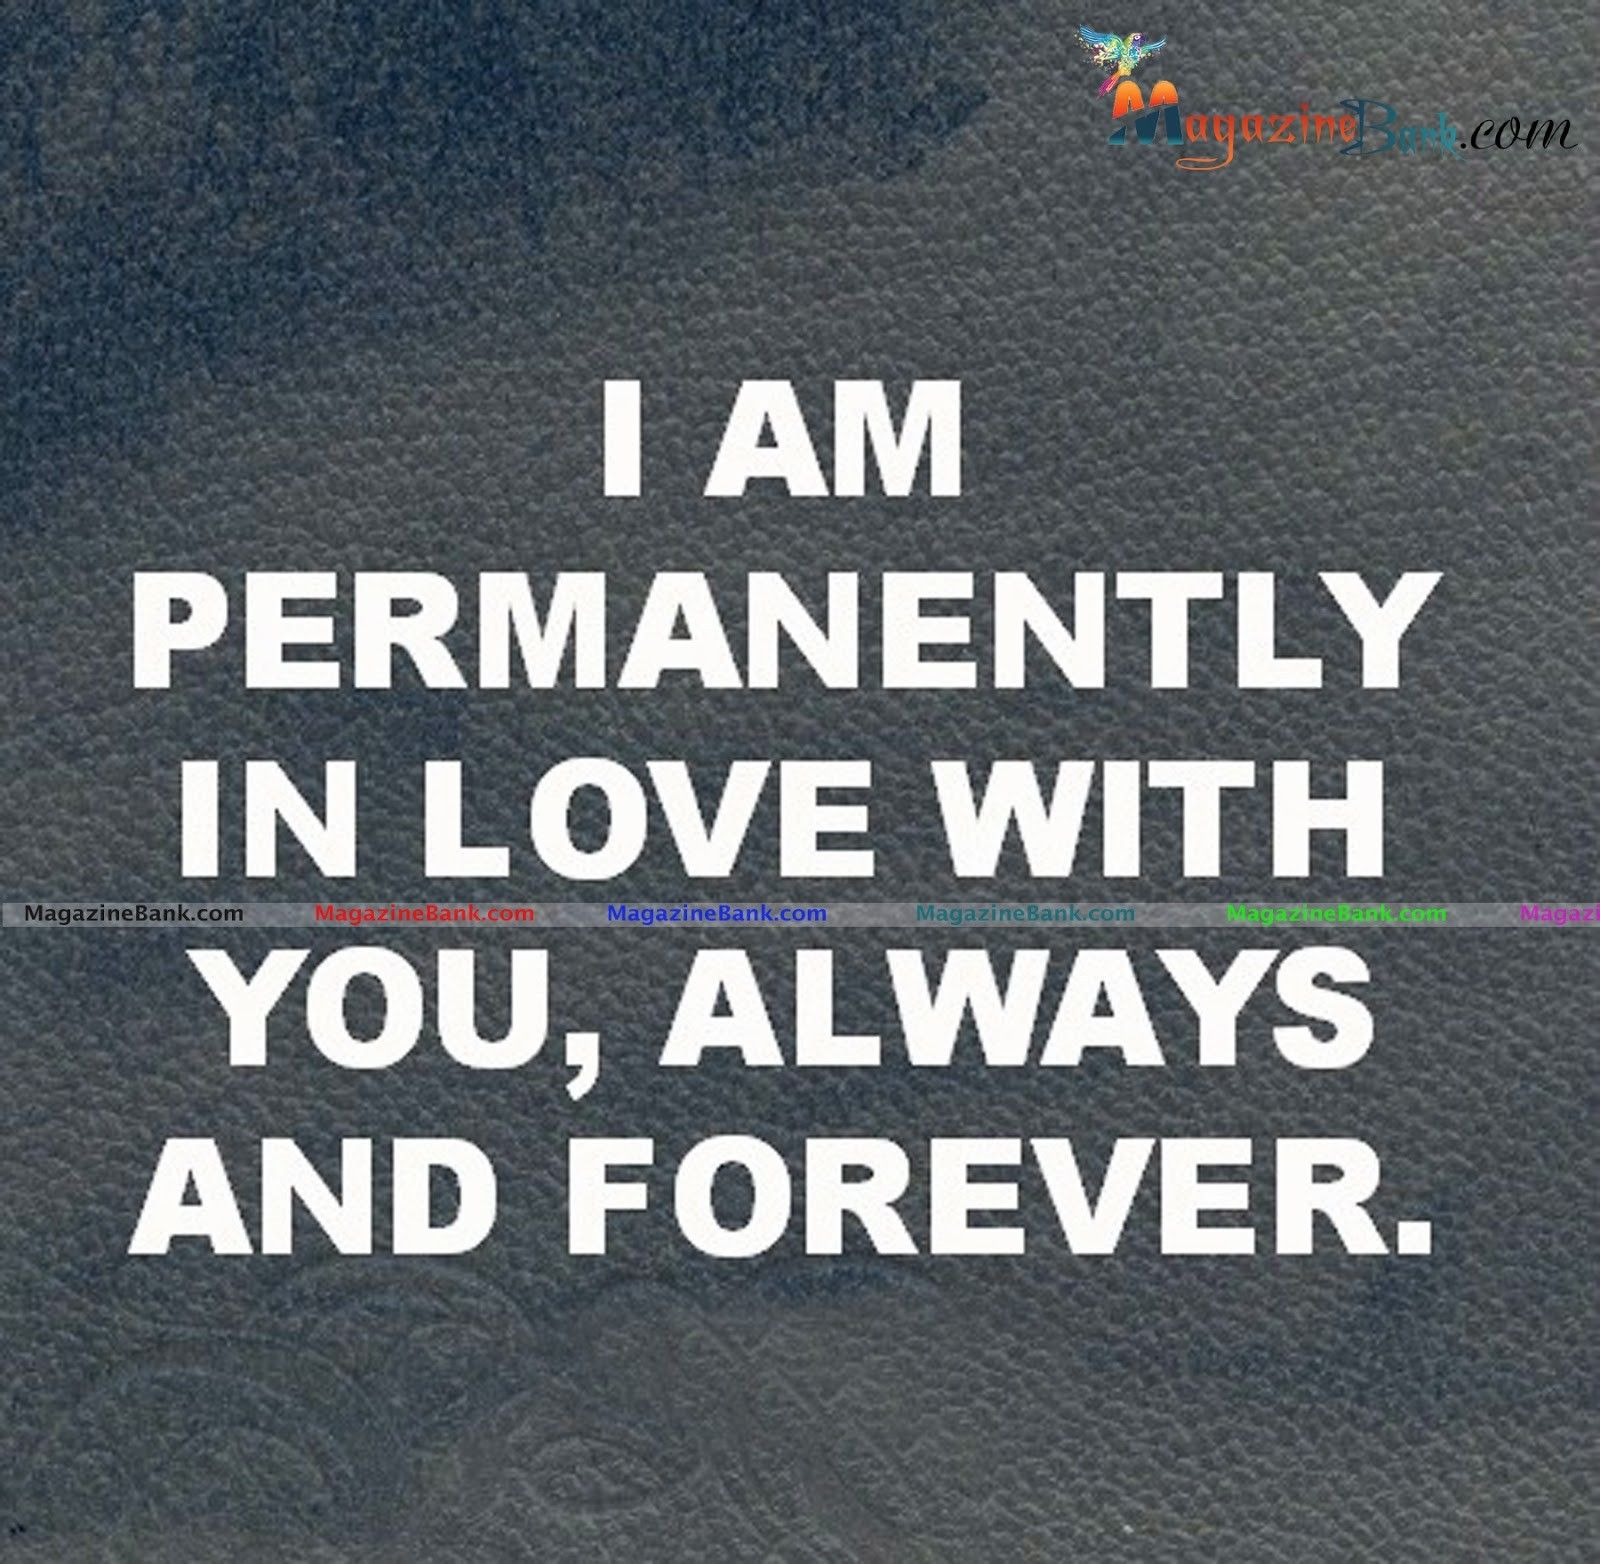 """I am permanently in love with you always and forever "" Cute Romantic Quotes & Love Quotes For Him"